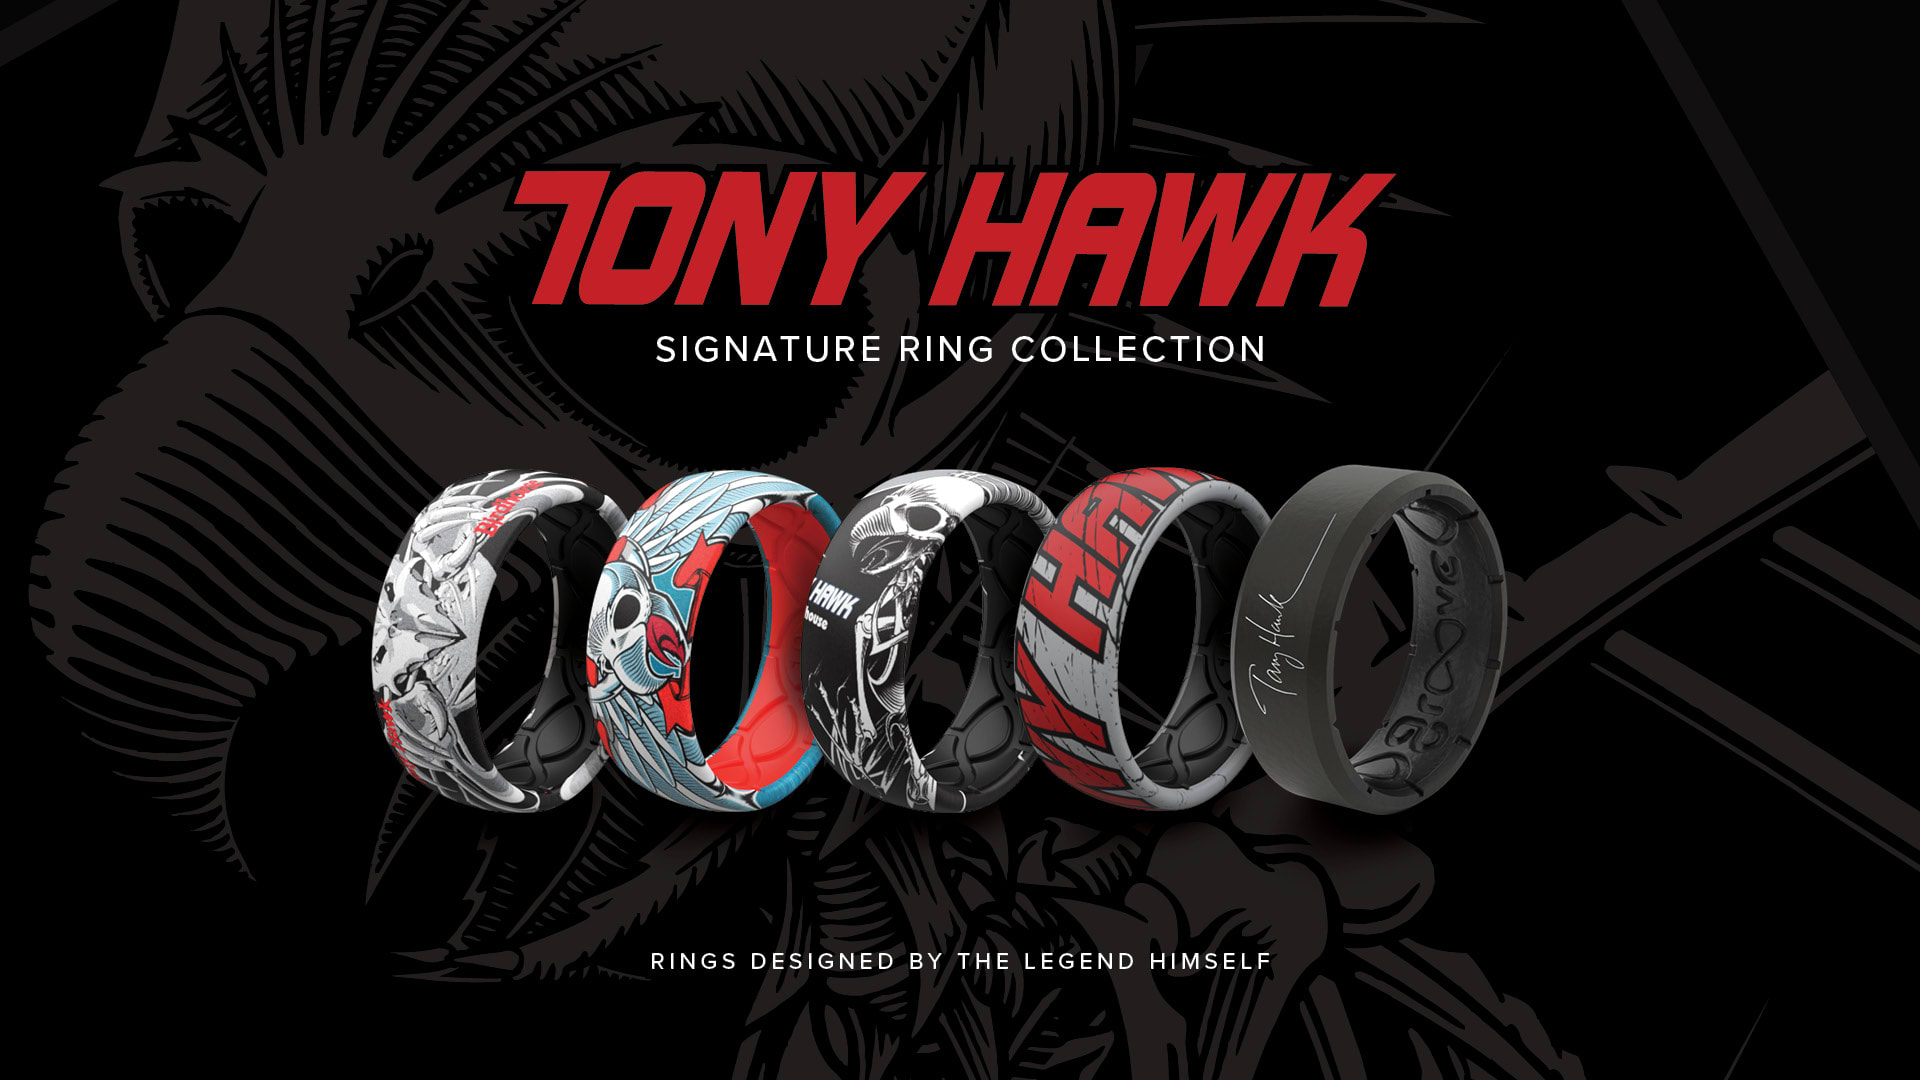 Shop Tony Hawk, featuring the Tony Hawk signature collection